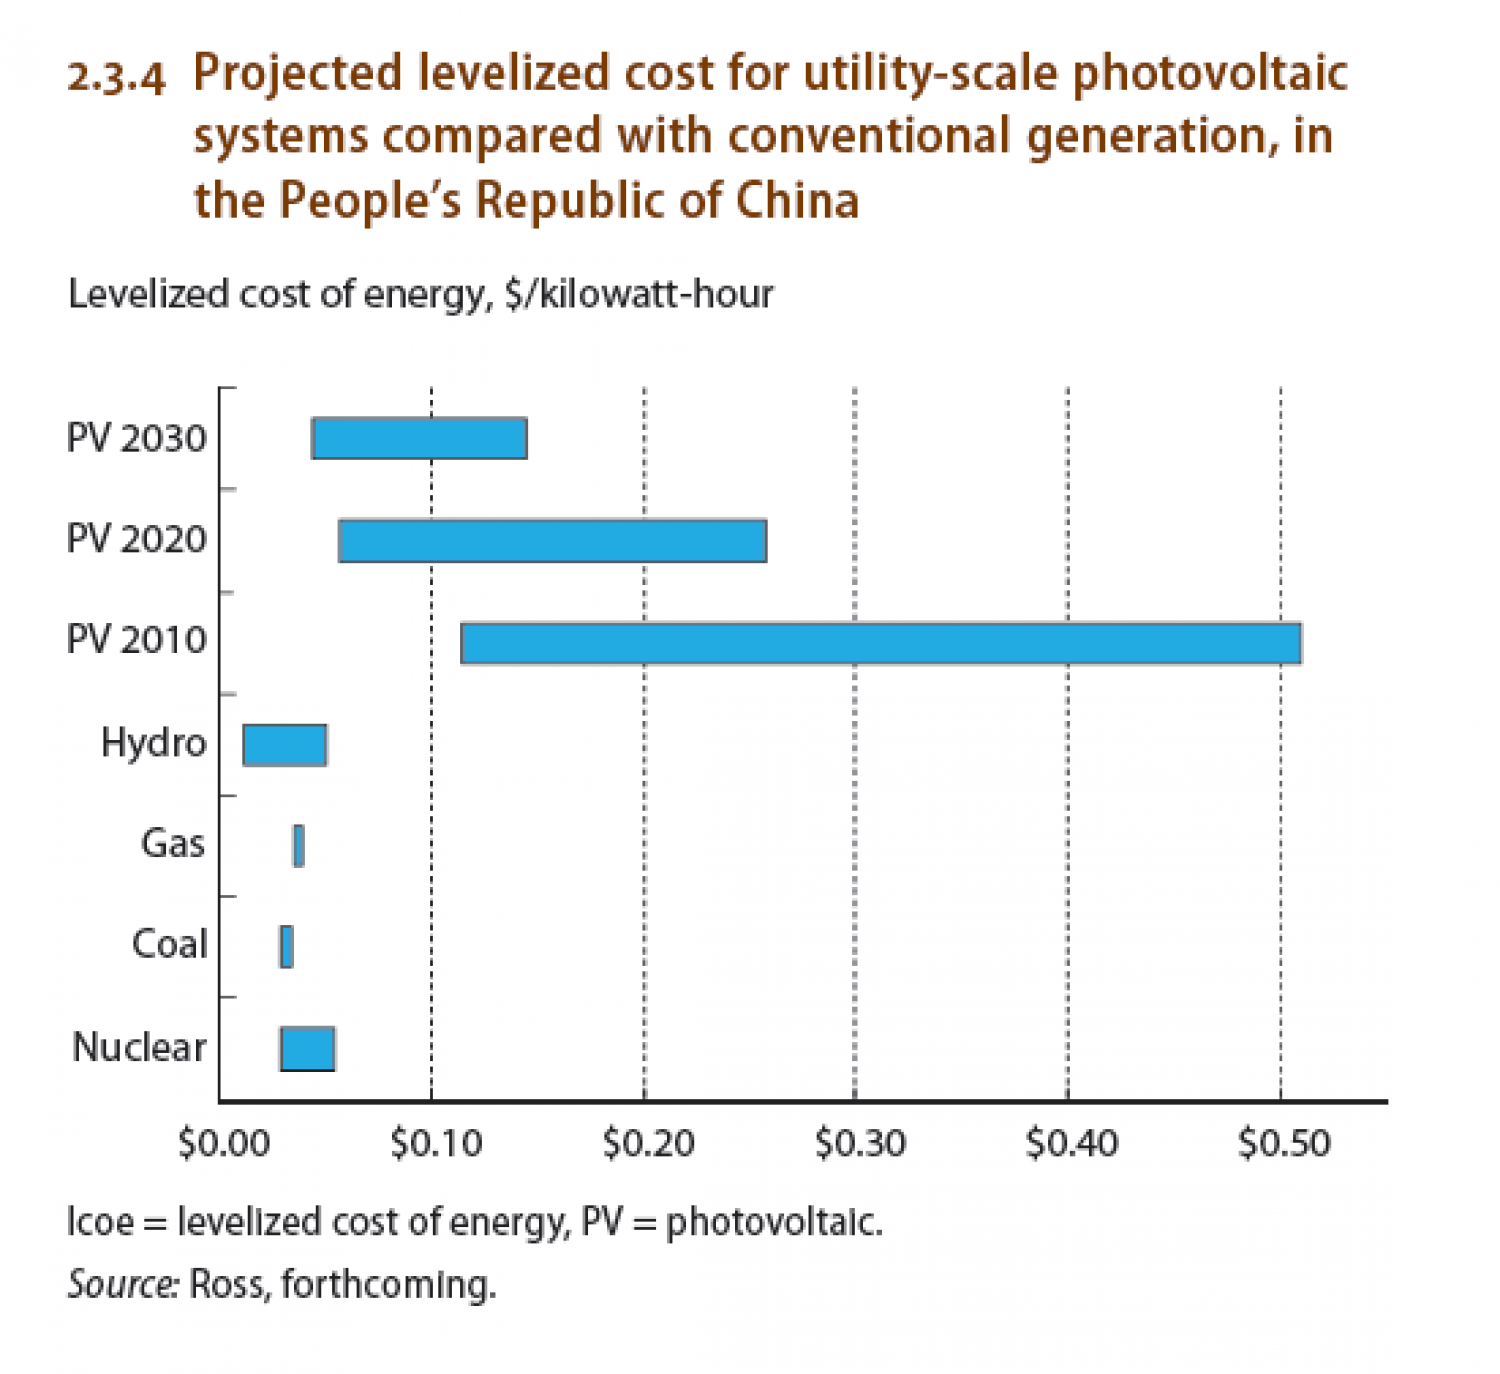 Projected levelized cost for utility-scale photovoltaic systems compared with conventional generation, in China Infographic